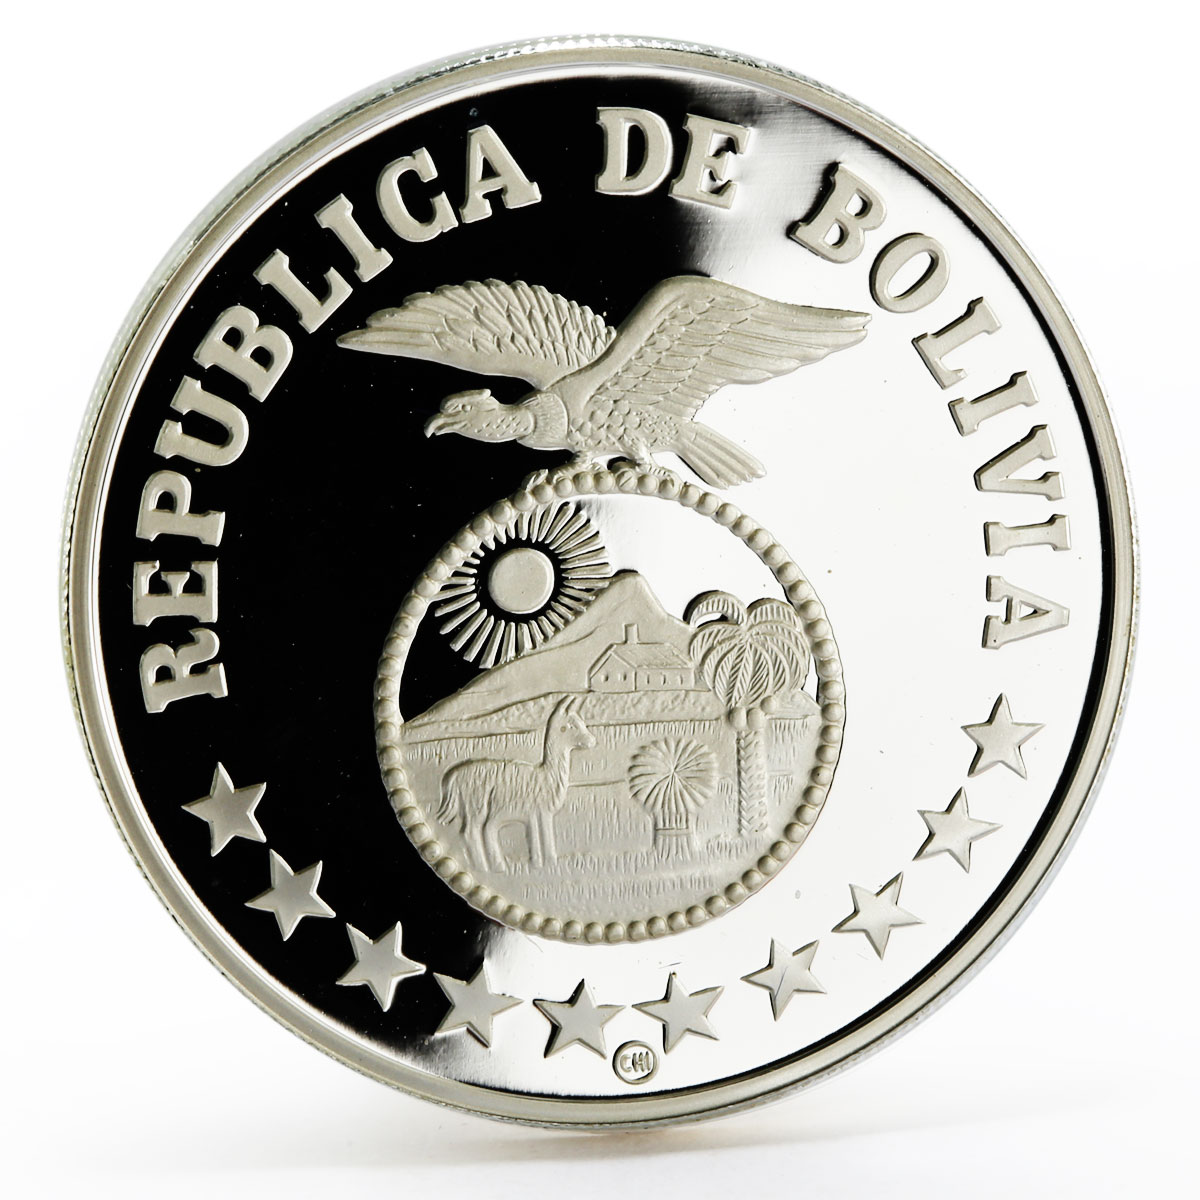 Bolivia 200 pesos International Year of the Child proof silver coin 1979